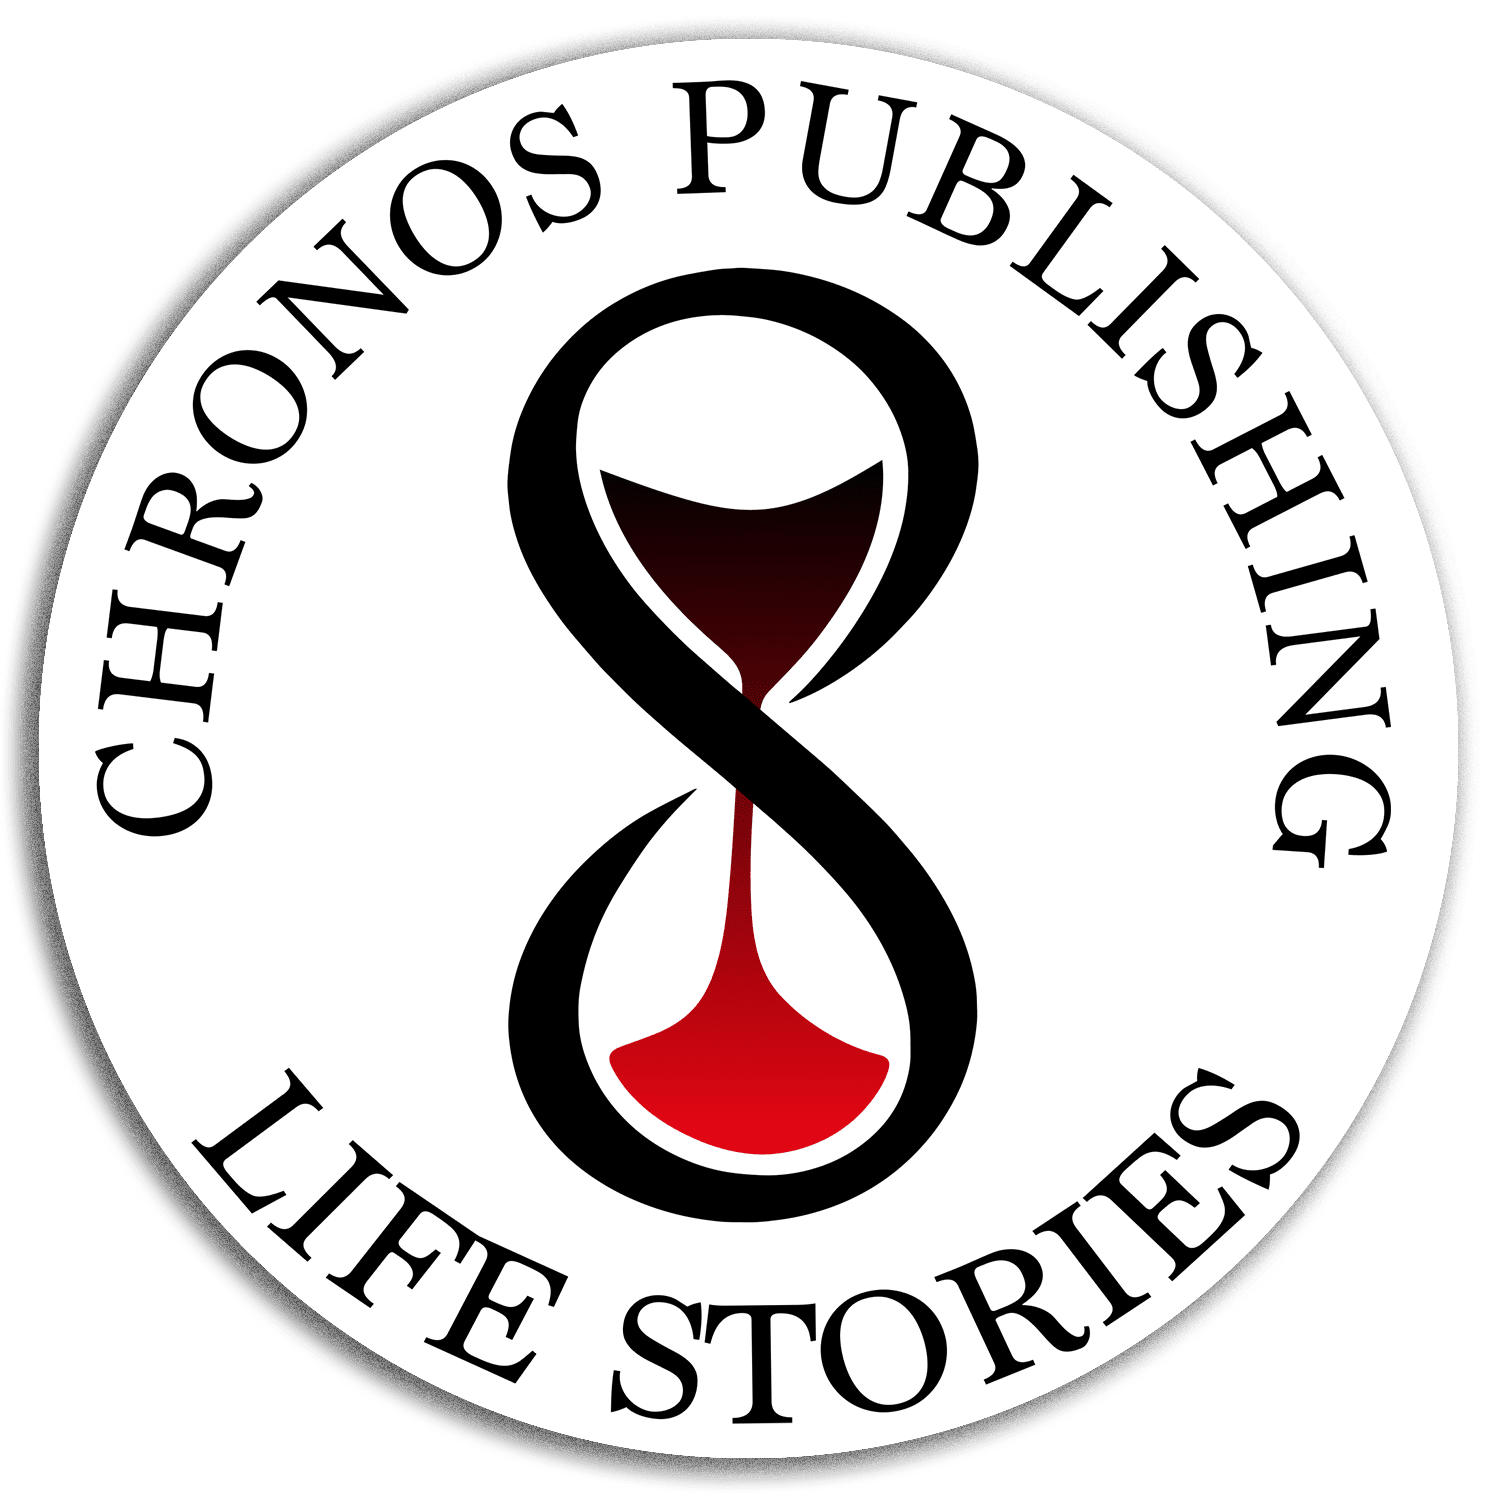 Chronos Publishing - Independent Publishers